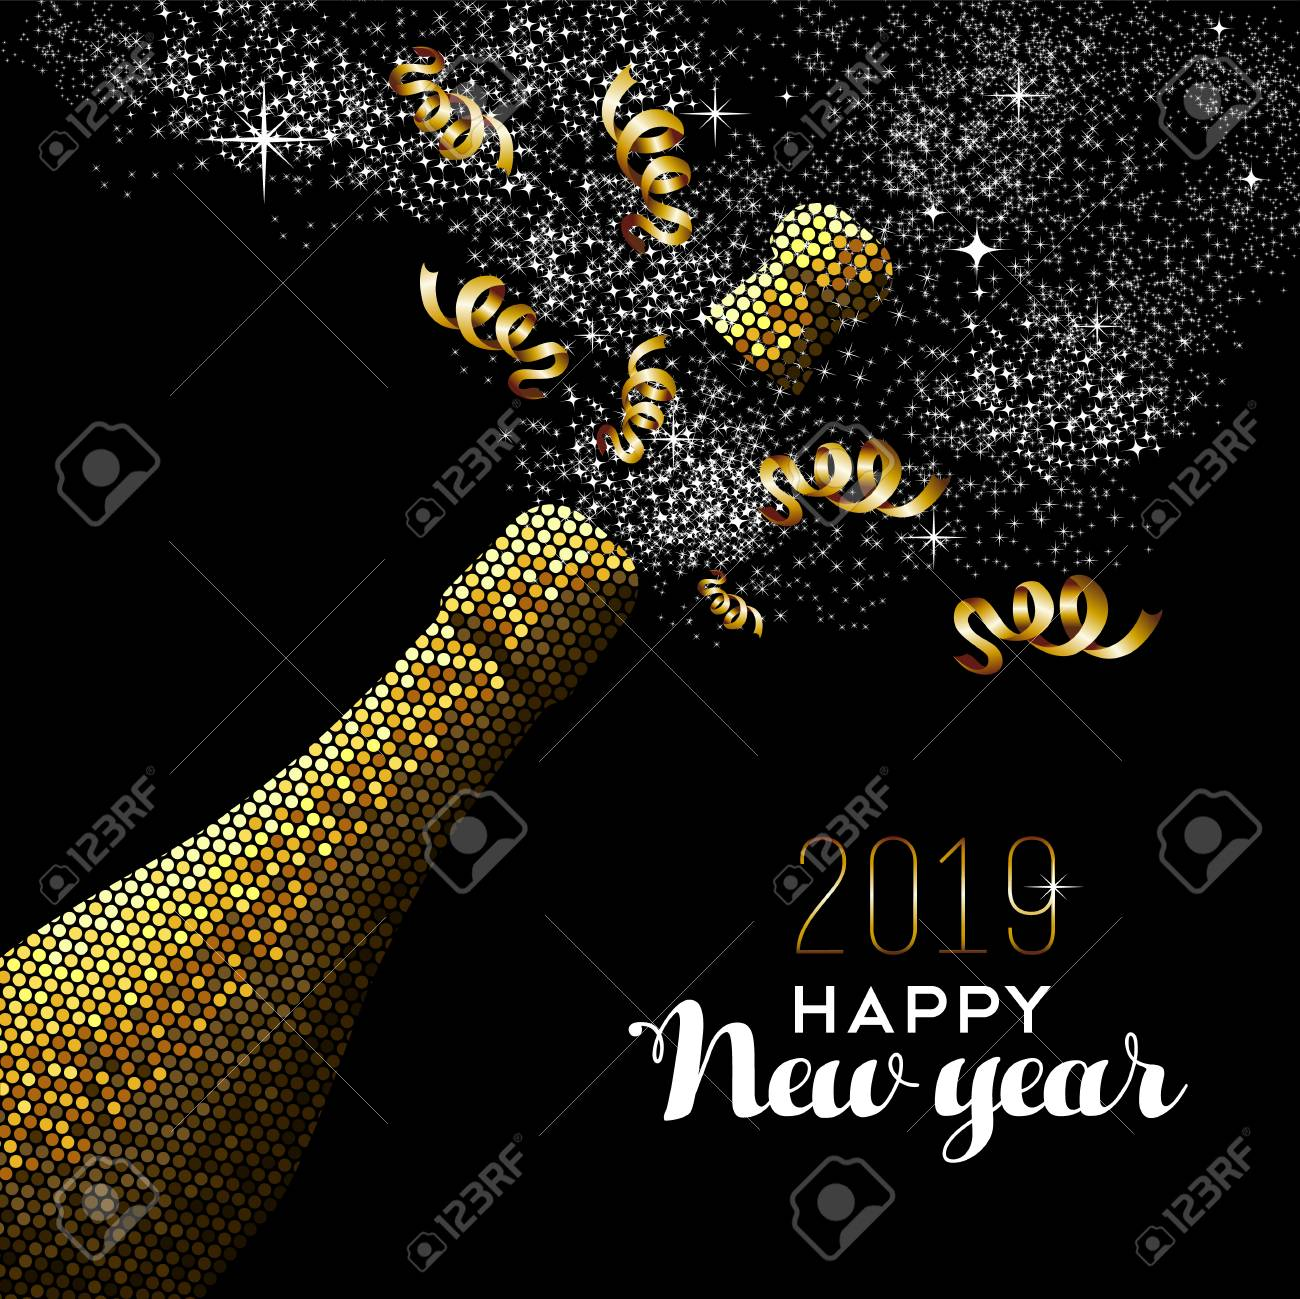 Happy new year 2019 luxury gold champagne bottle in mosaic style. Ideal for holiday card or elegant party invitation. - 113543093